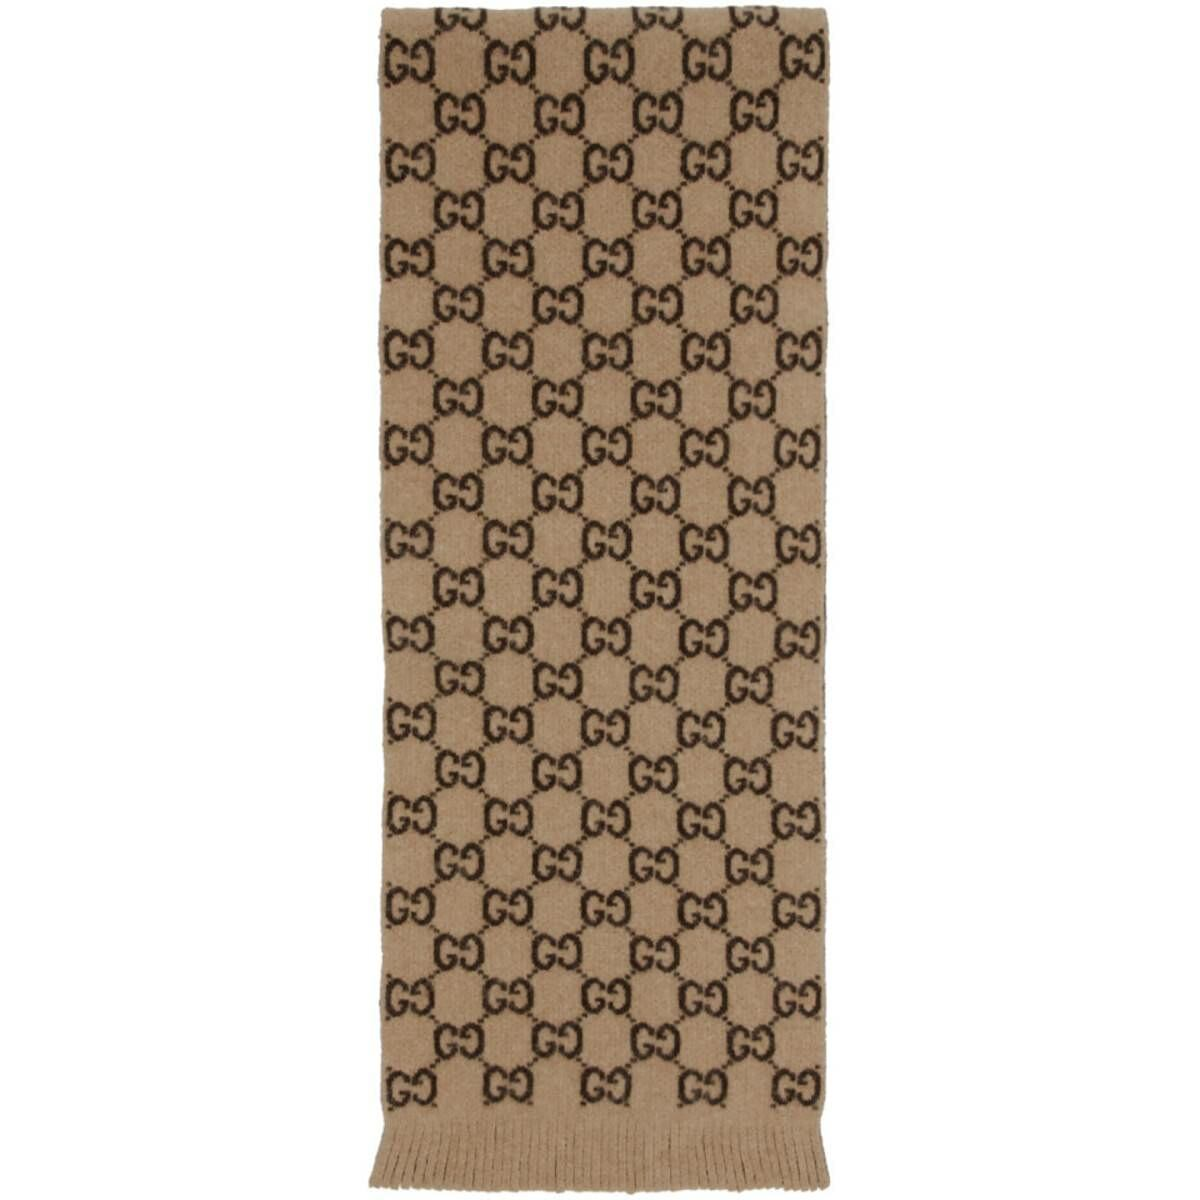 Gucci Beige Wool GG Scarf Ssense USA MEN Men ACCESSORIES Mens SCARFS